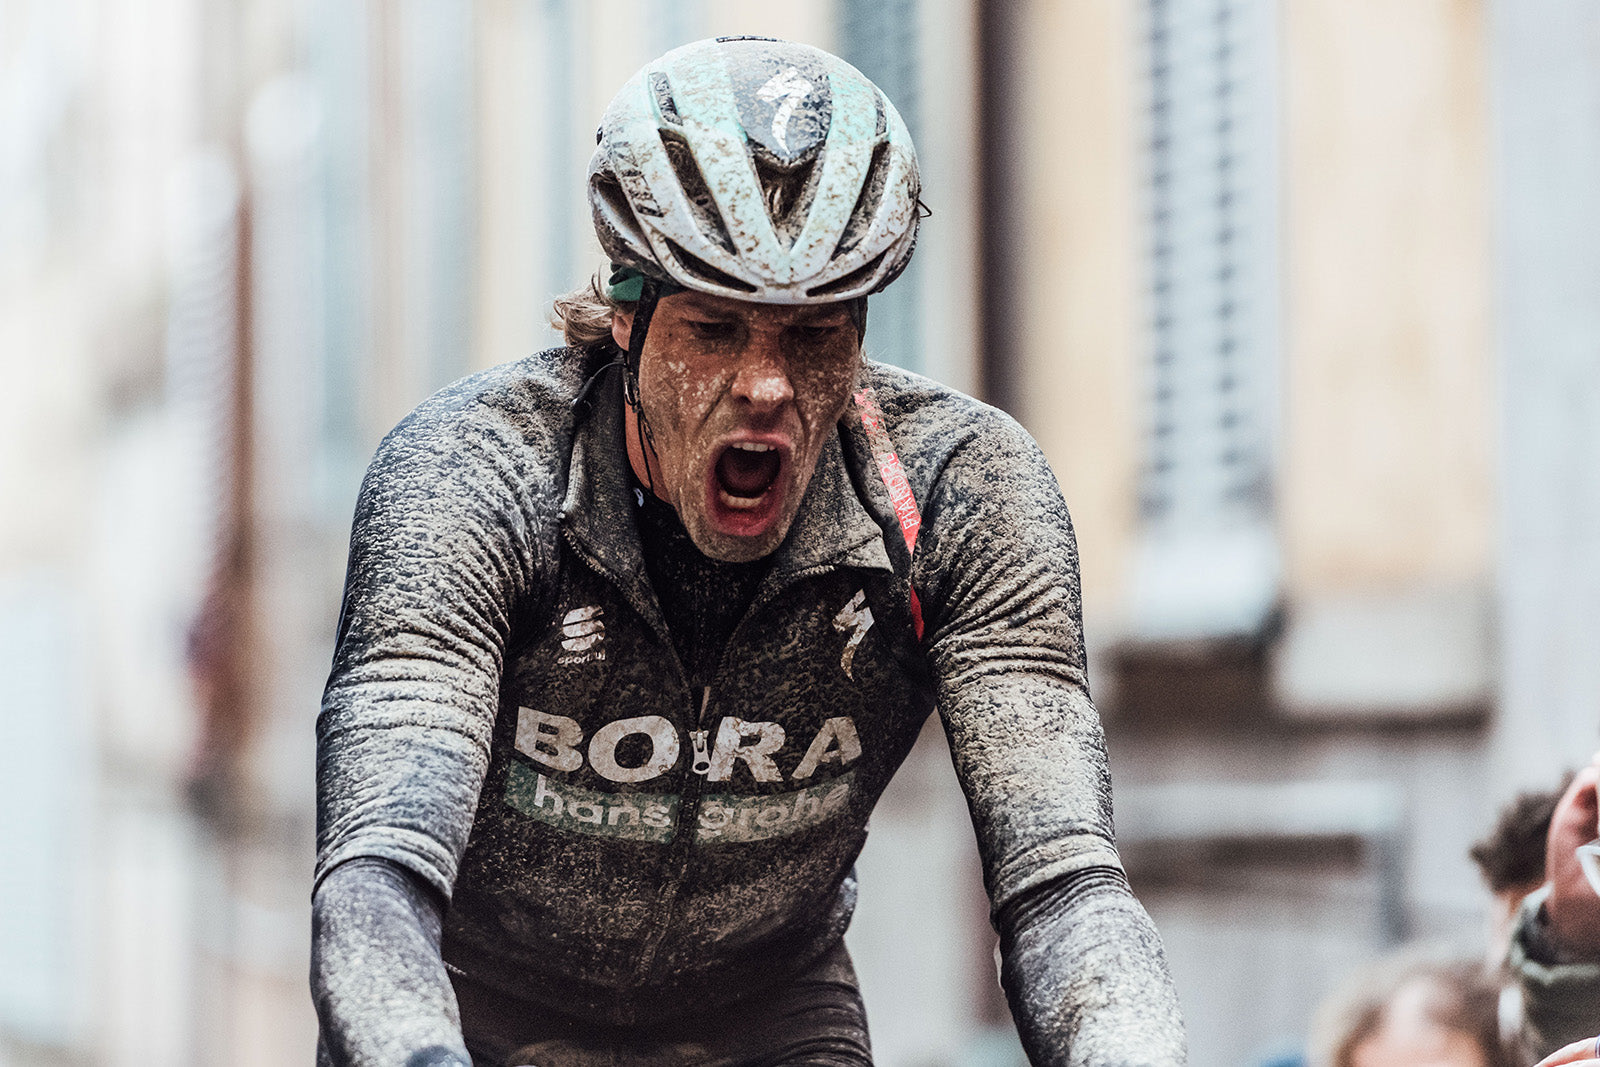 Male rider shouting during race with mud all over himself